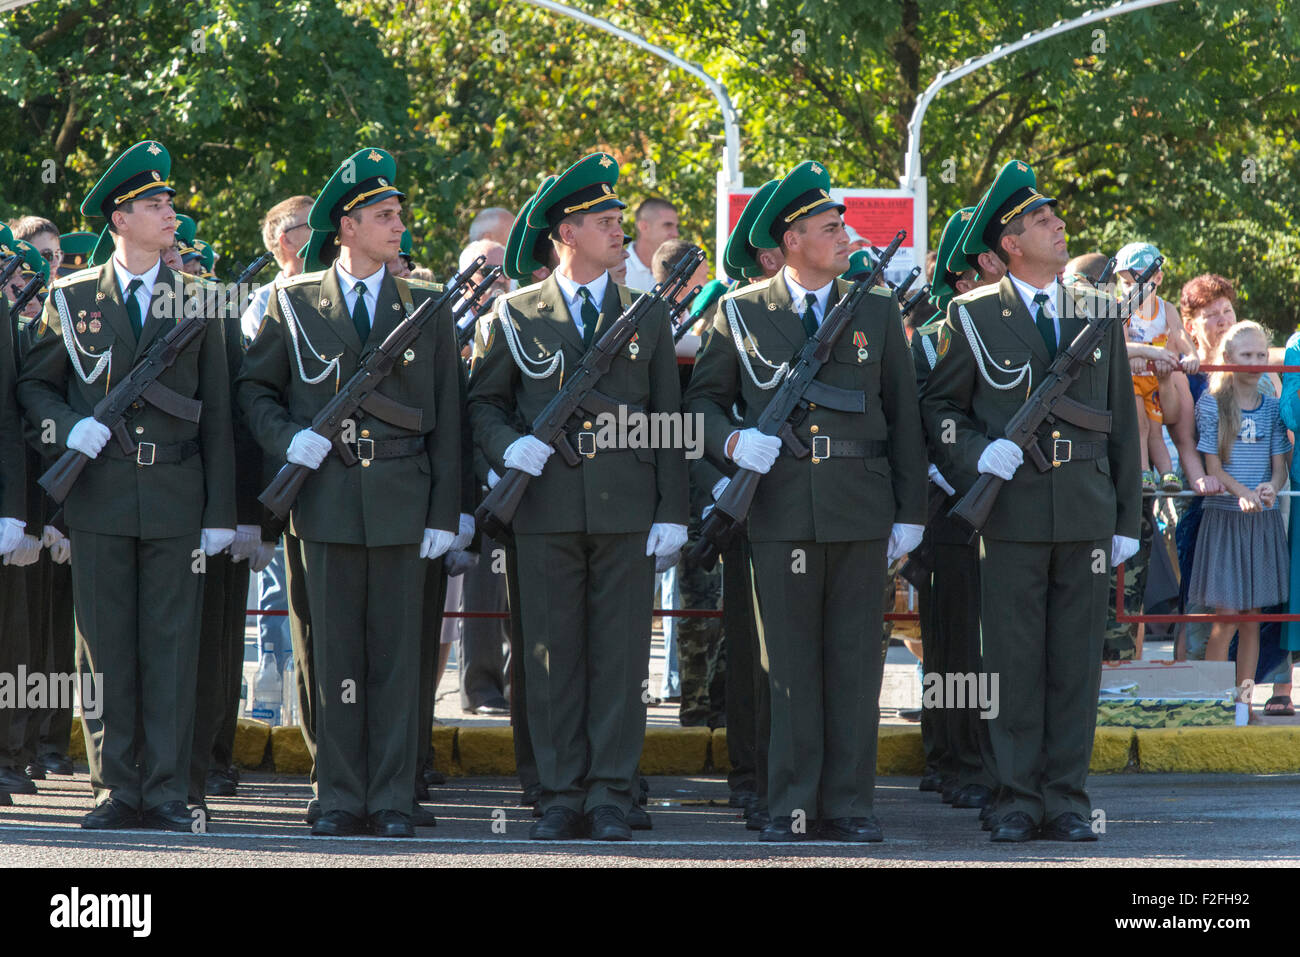 Soldiers Standing To Attention 25th Anniversary of the Pridnestrovian Moldavian Republic PMR, Transnistria, Soviet - Stock Image